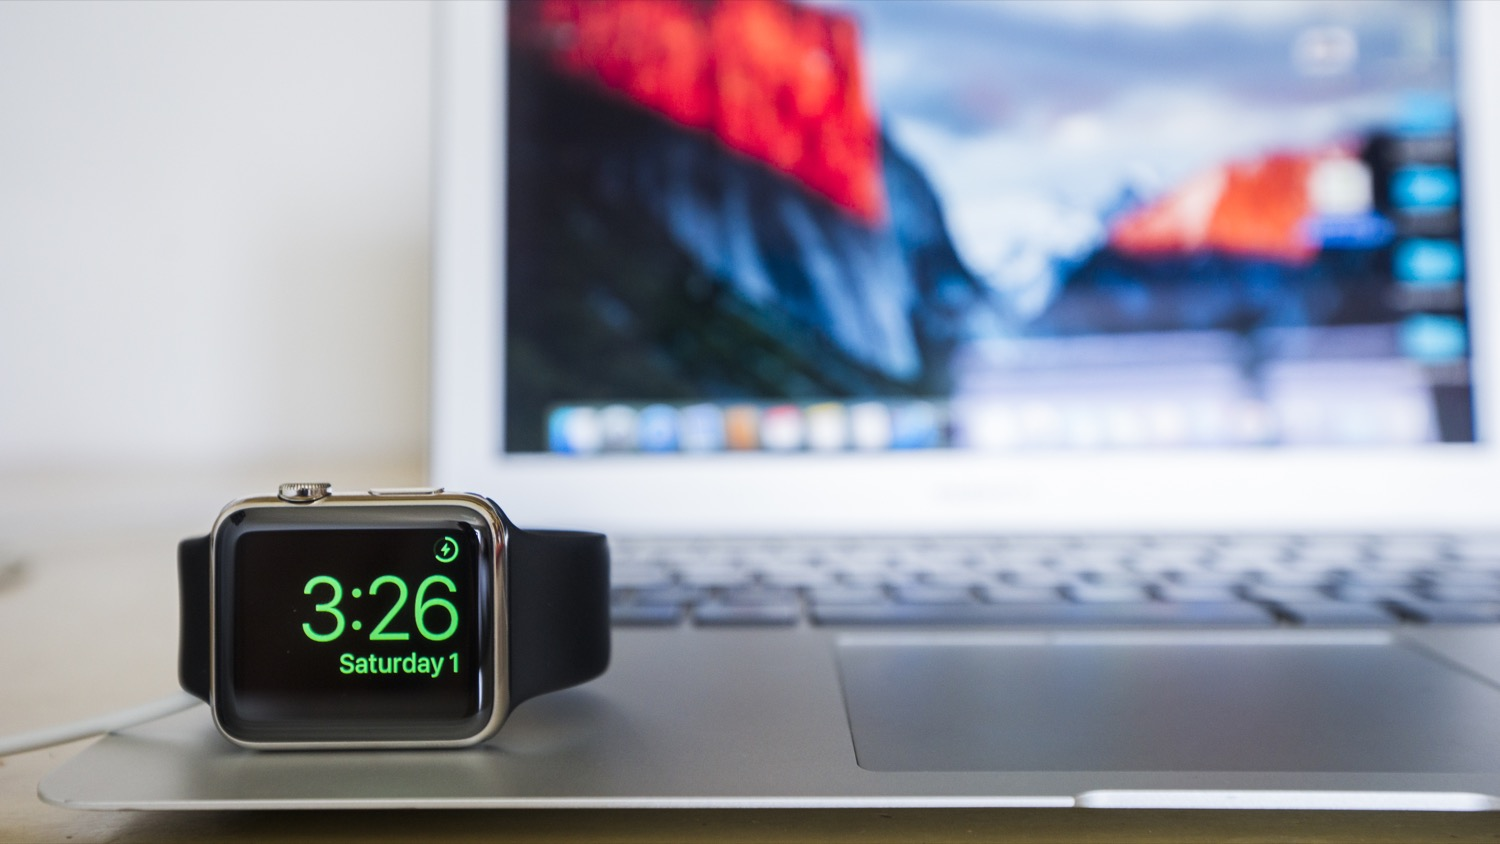 Apple released OS X, 10.11.5, watchOS 2.2.1 and tvOS 9.2.1